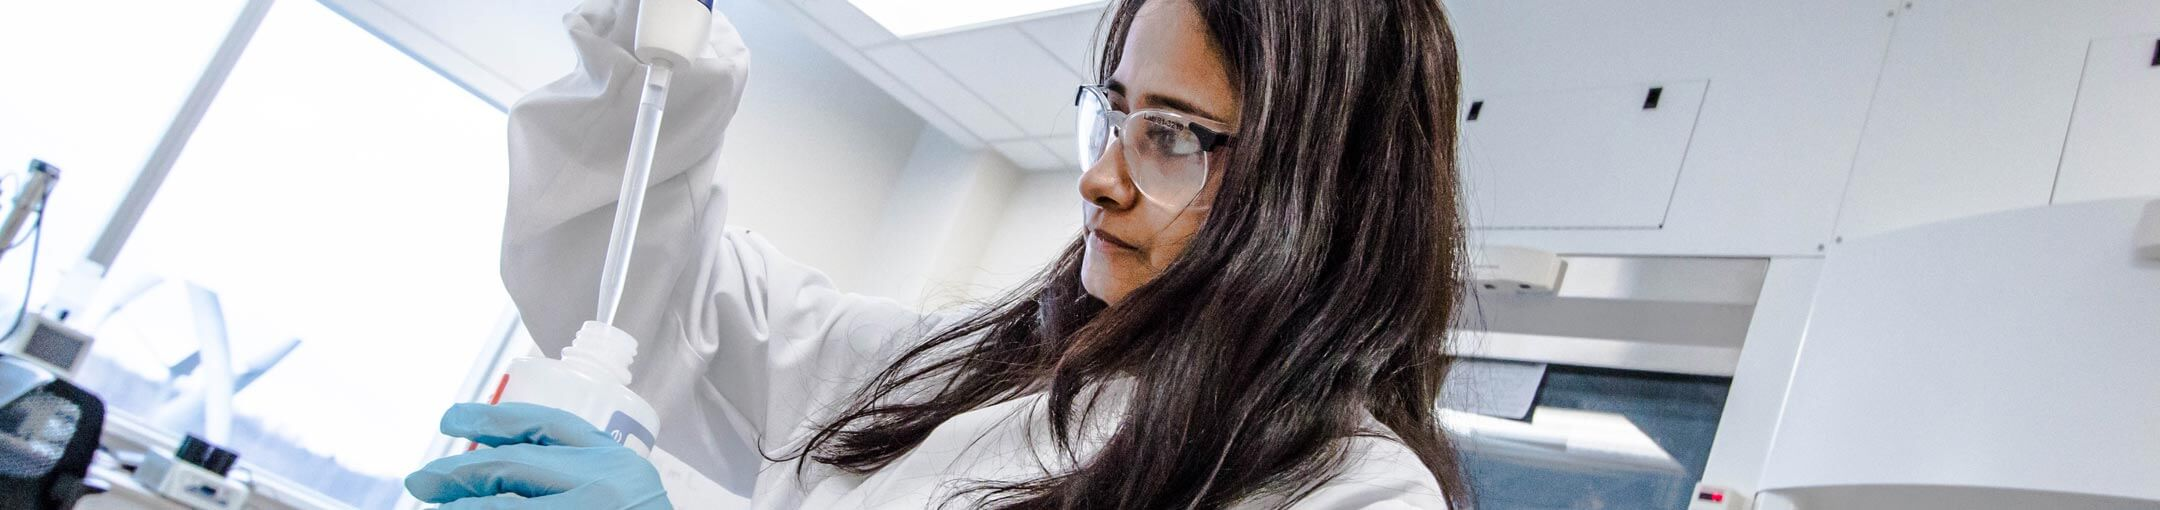 A student with long brown hair in a lab uses a pipette to put liquid into a bottle.